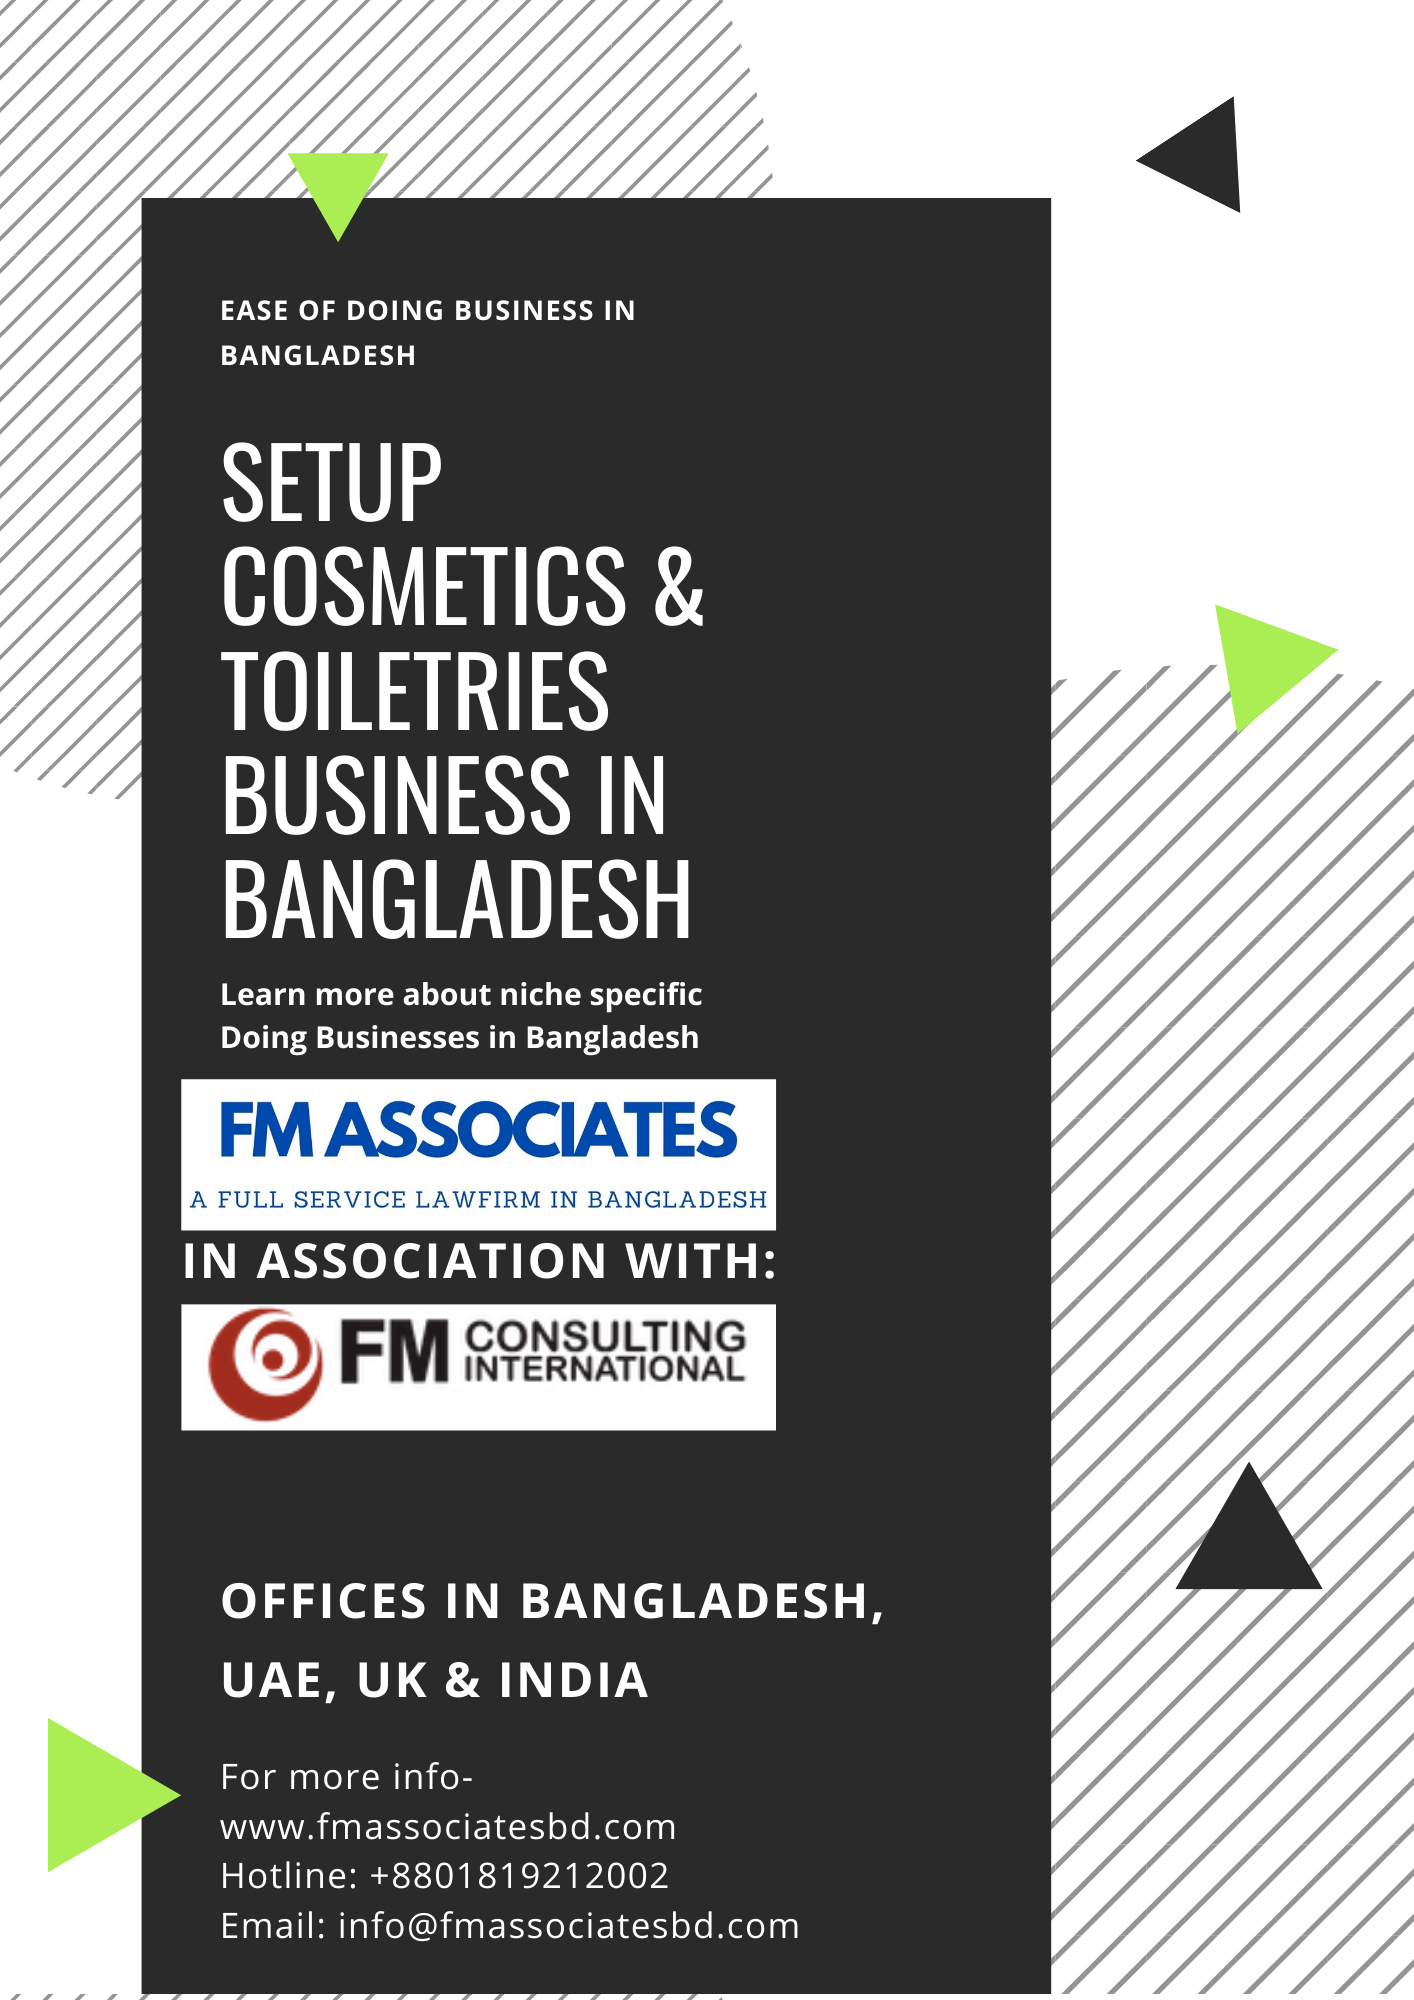 How to Setup Cosmetics & Toiletries Business in Bangladesh